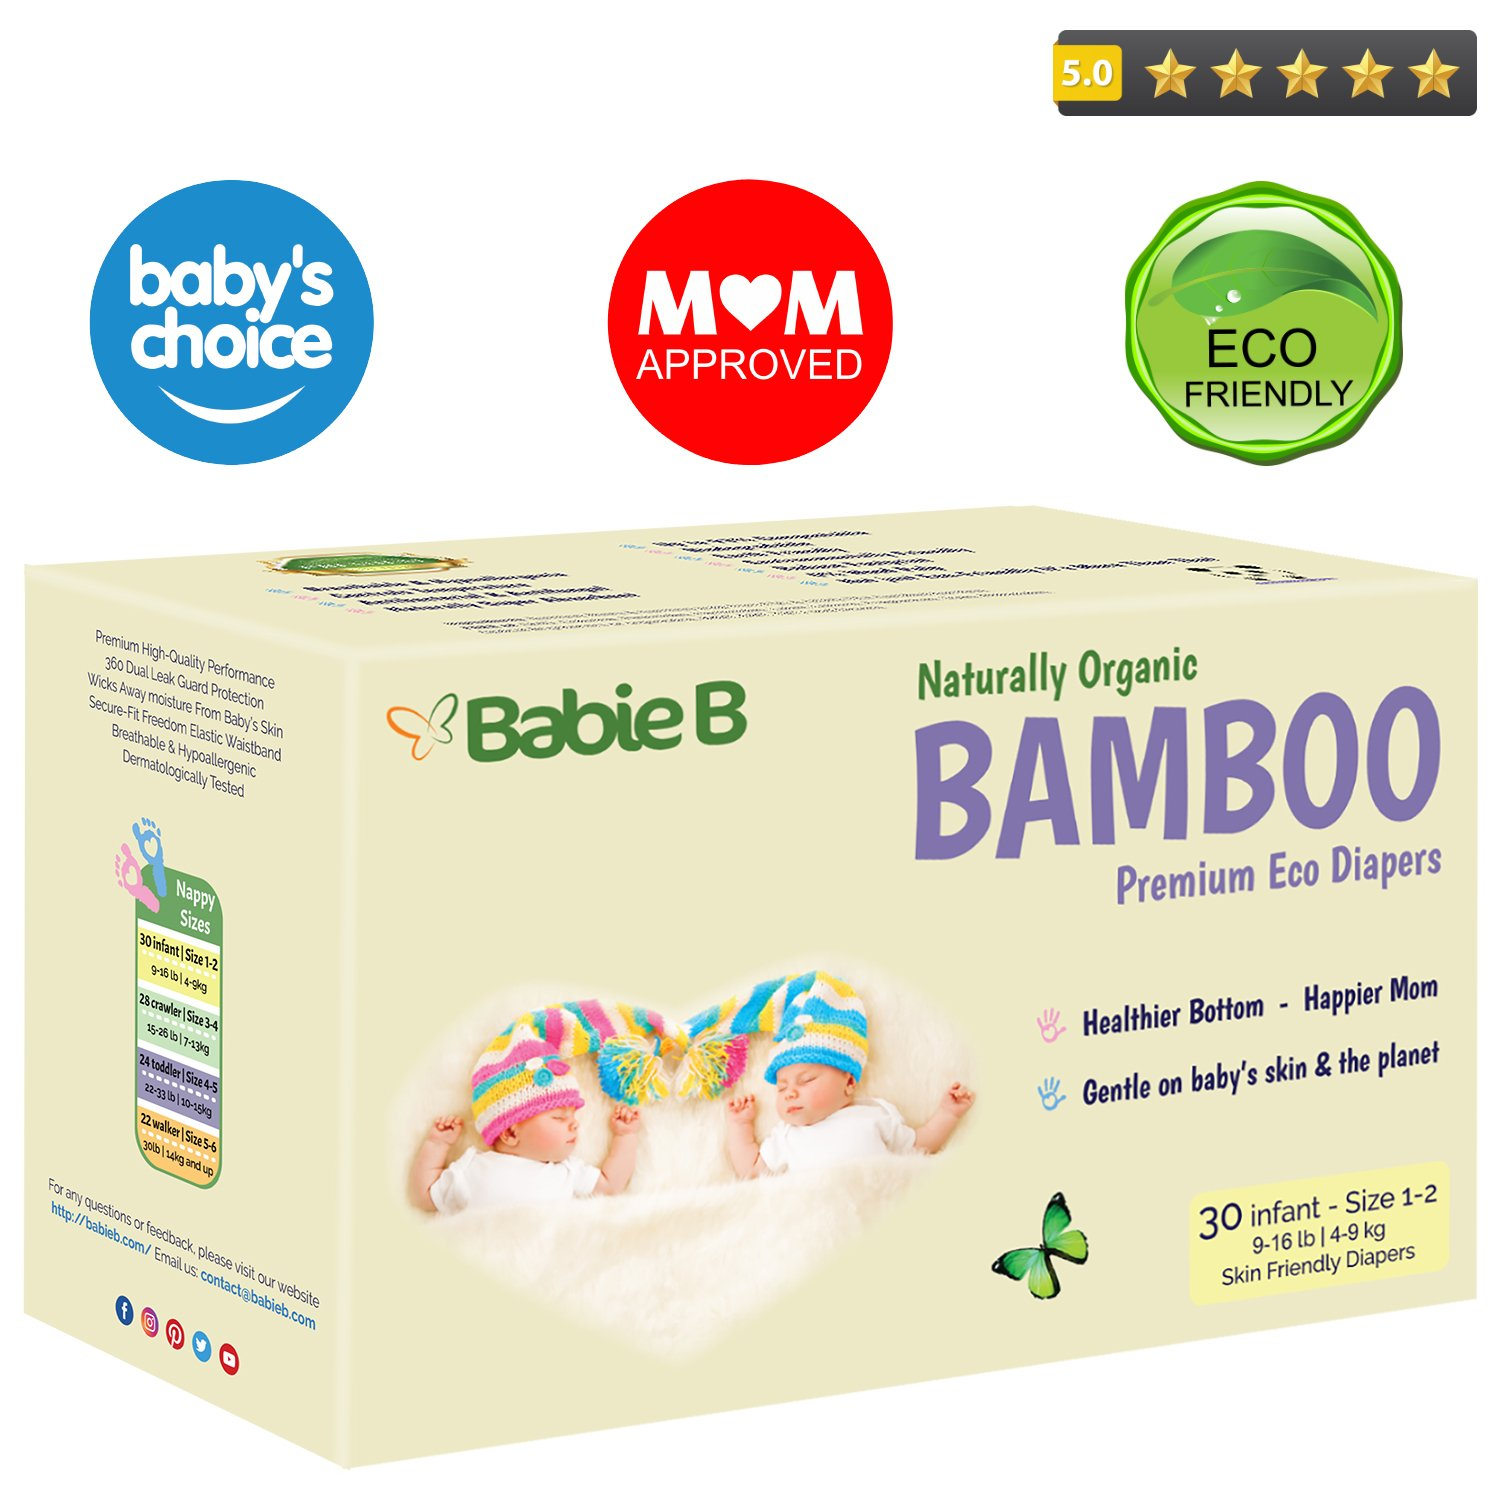 Best Bamboo Diapers   Eco-Friendly Hypoallergenic   Silky Soft w/Wetness Indicator Wicks Away Moisture to Keep Your Baby Dry & Happy   Premium High Quality   Size 1-2   9-16lb 30ct for Sensitive Skin